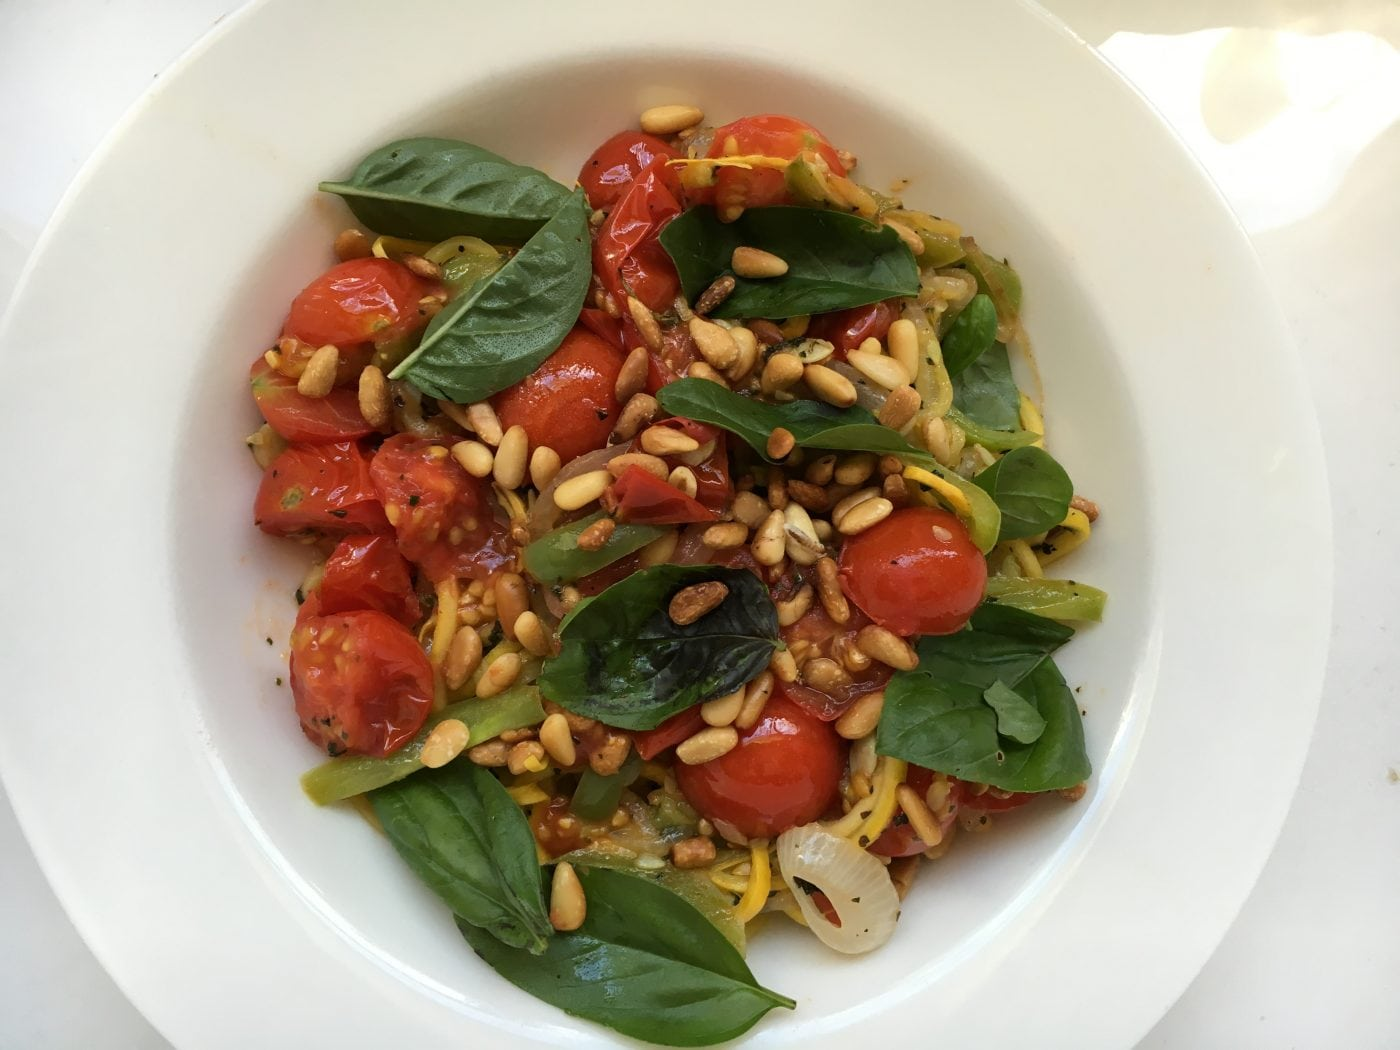 Food to Get 'That Glow' Spriralized Zucchini with Veggies and Pine Nuts